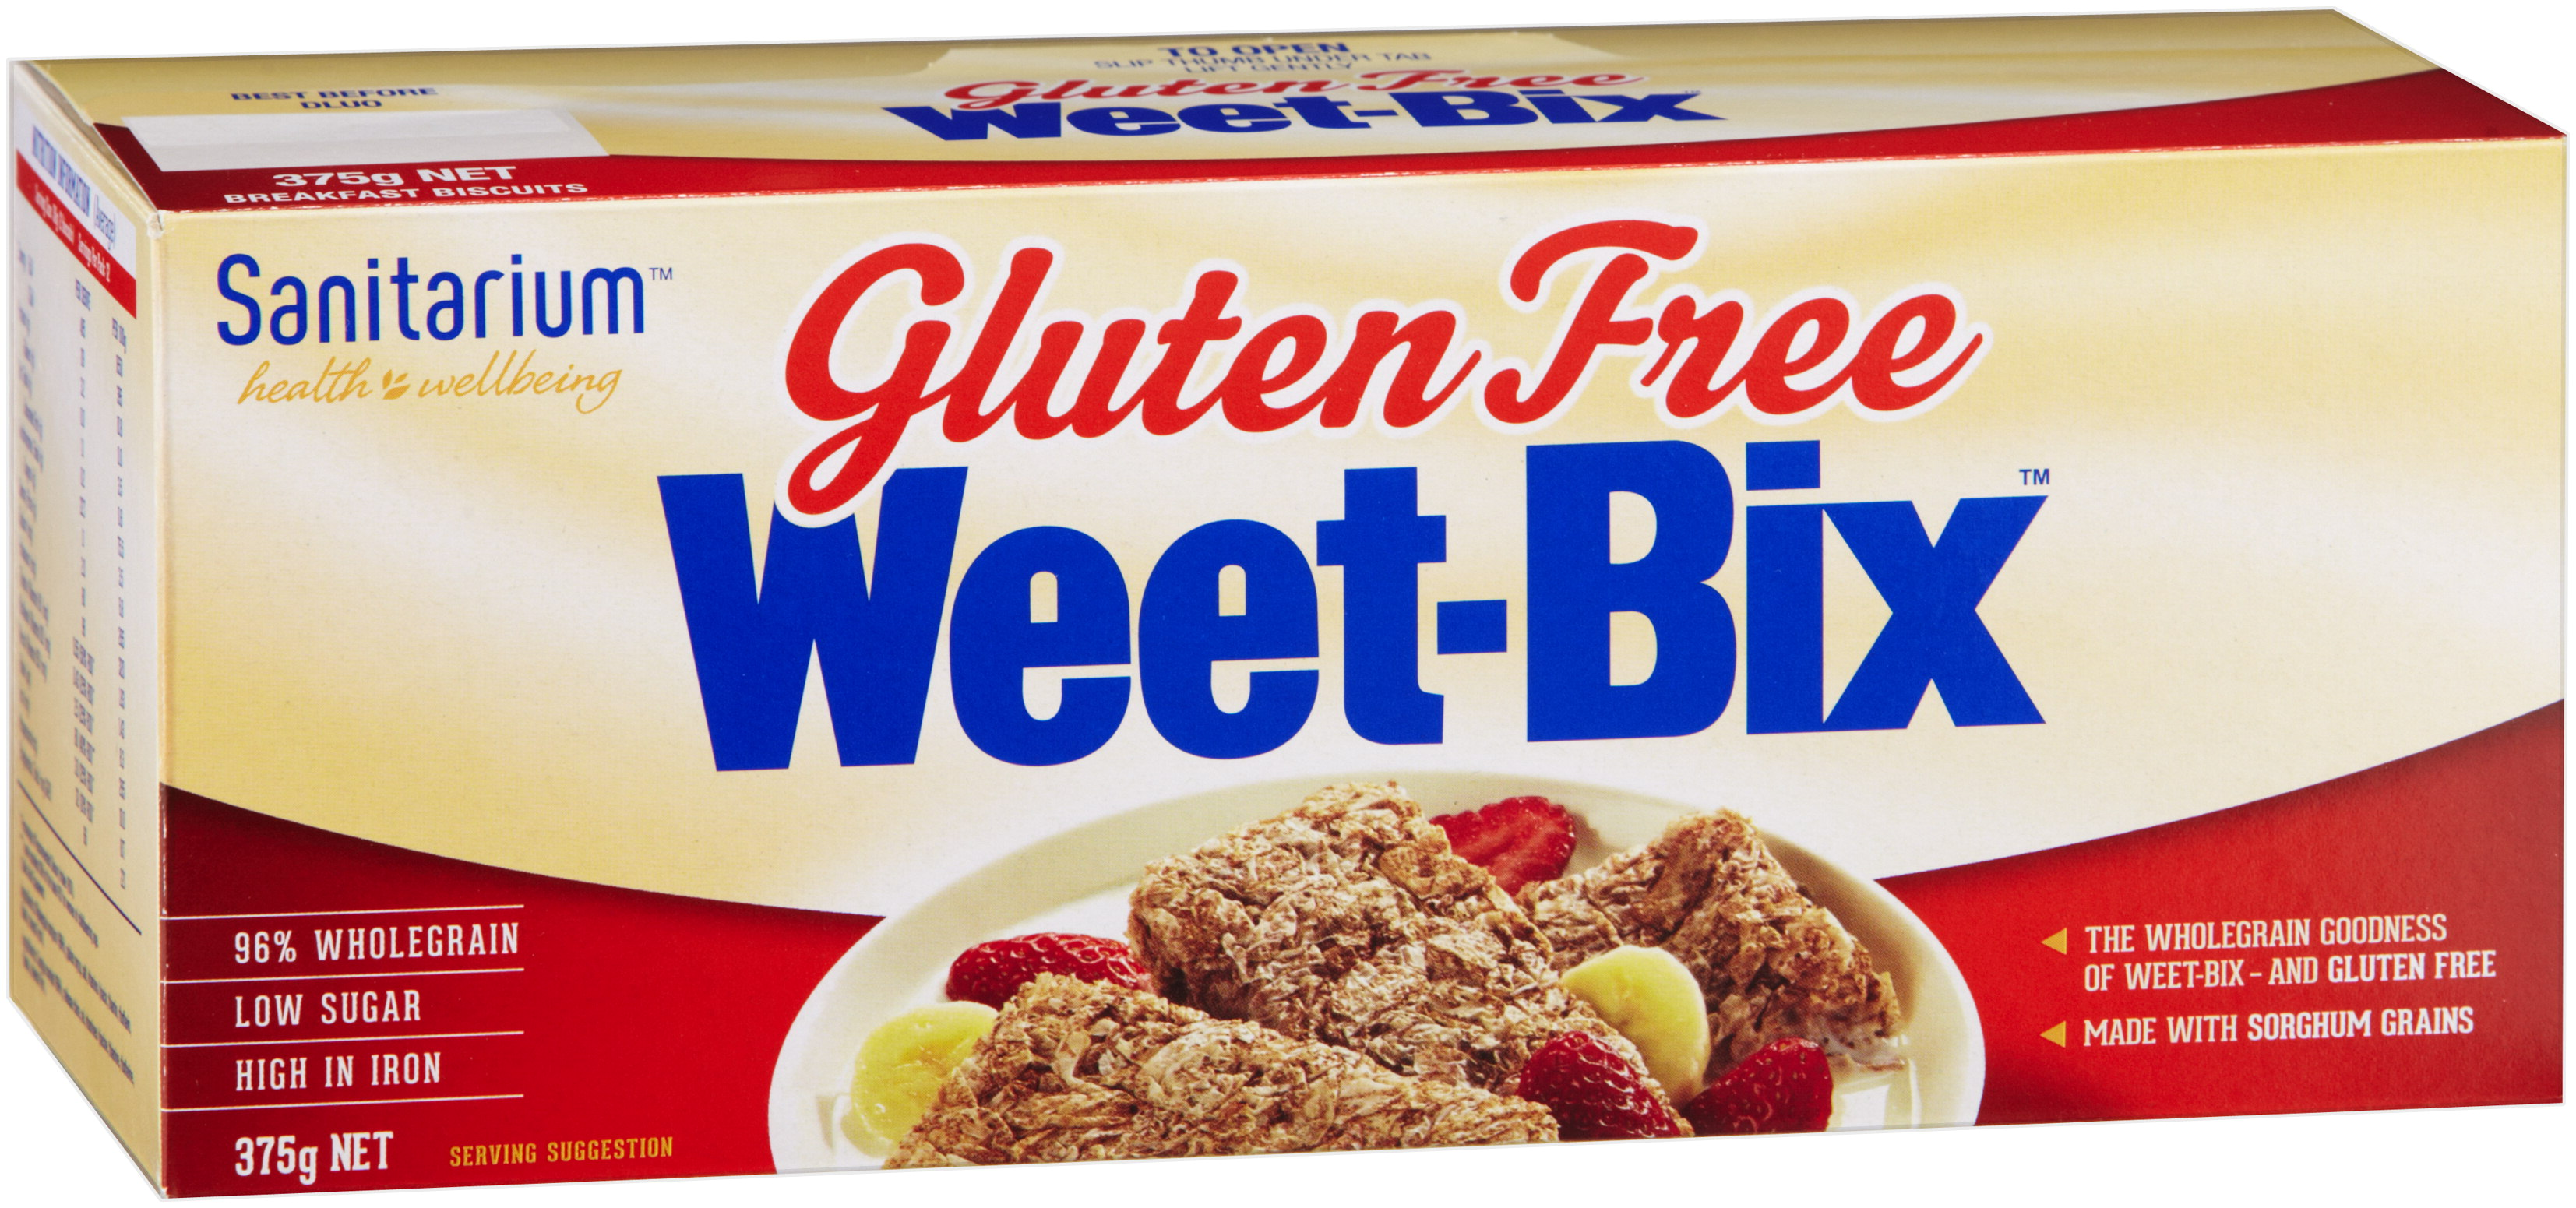 Three Delicious New Gluten-Free Products